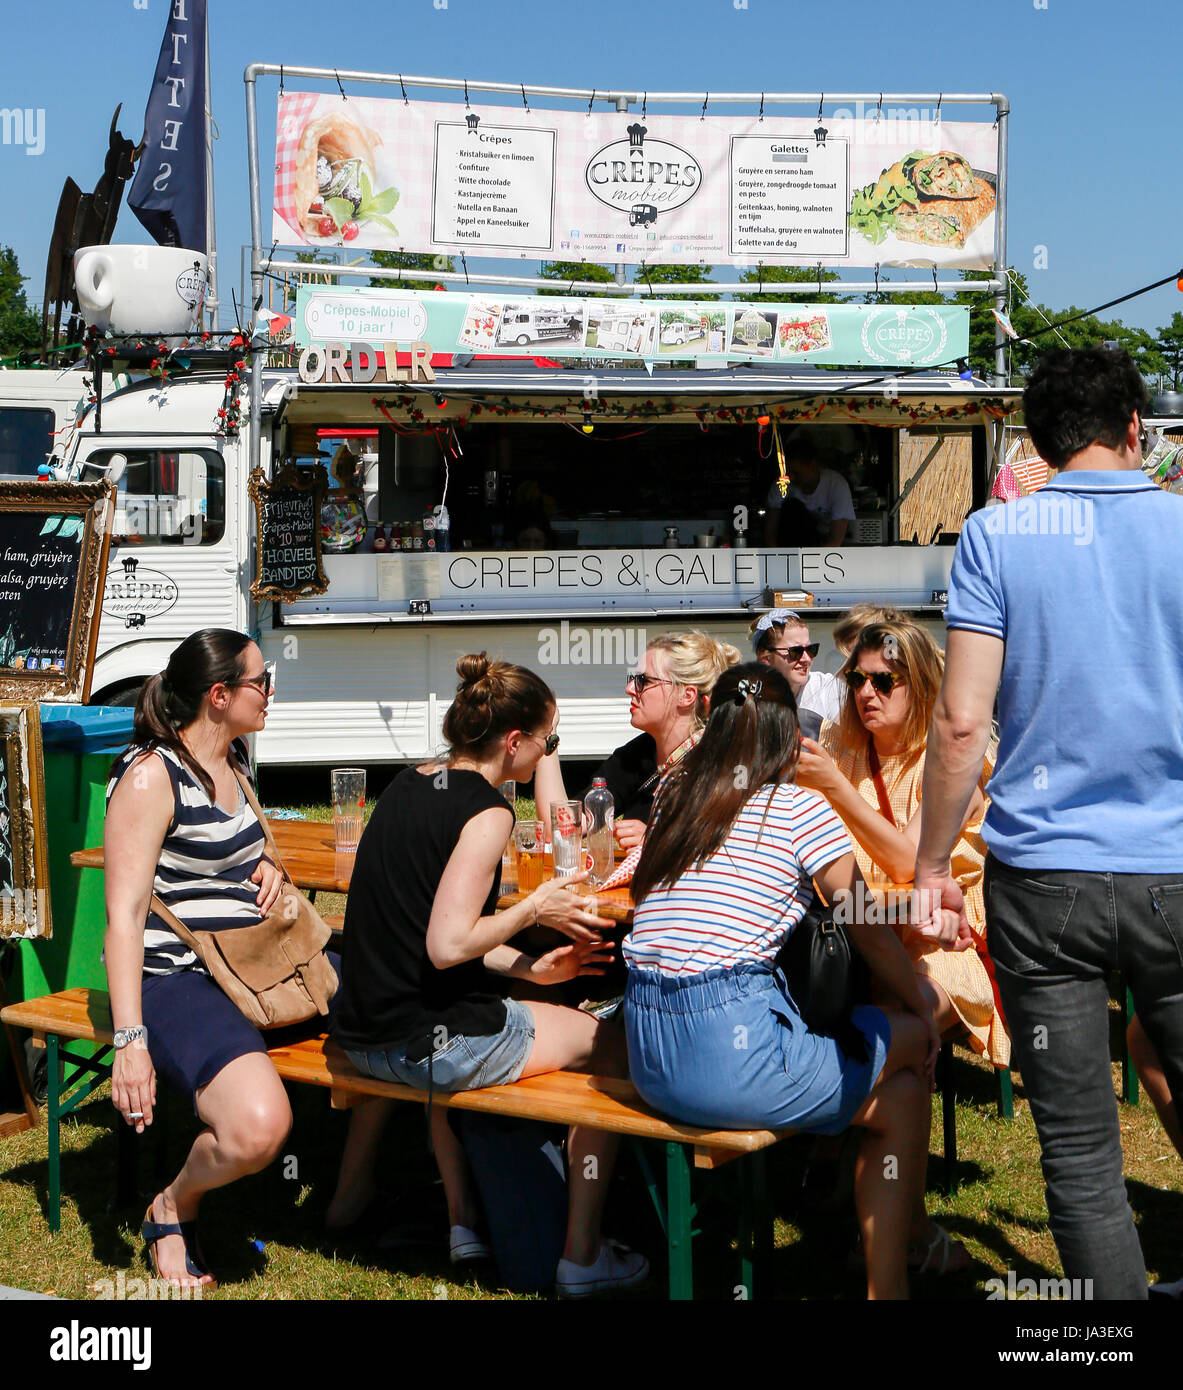 Crepes Mobile with crepes at Food Festival The Rolling Kitchens at the Westergasfabriek near the Westerpark in Amsterdam, - Stock Image